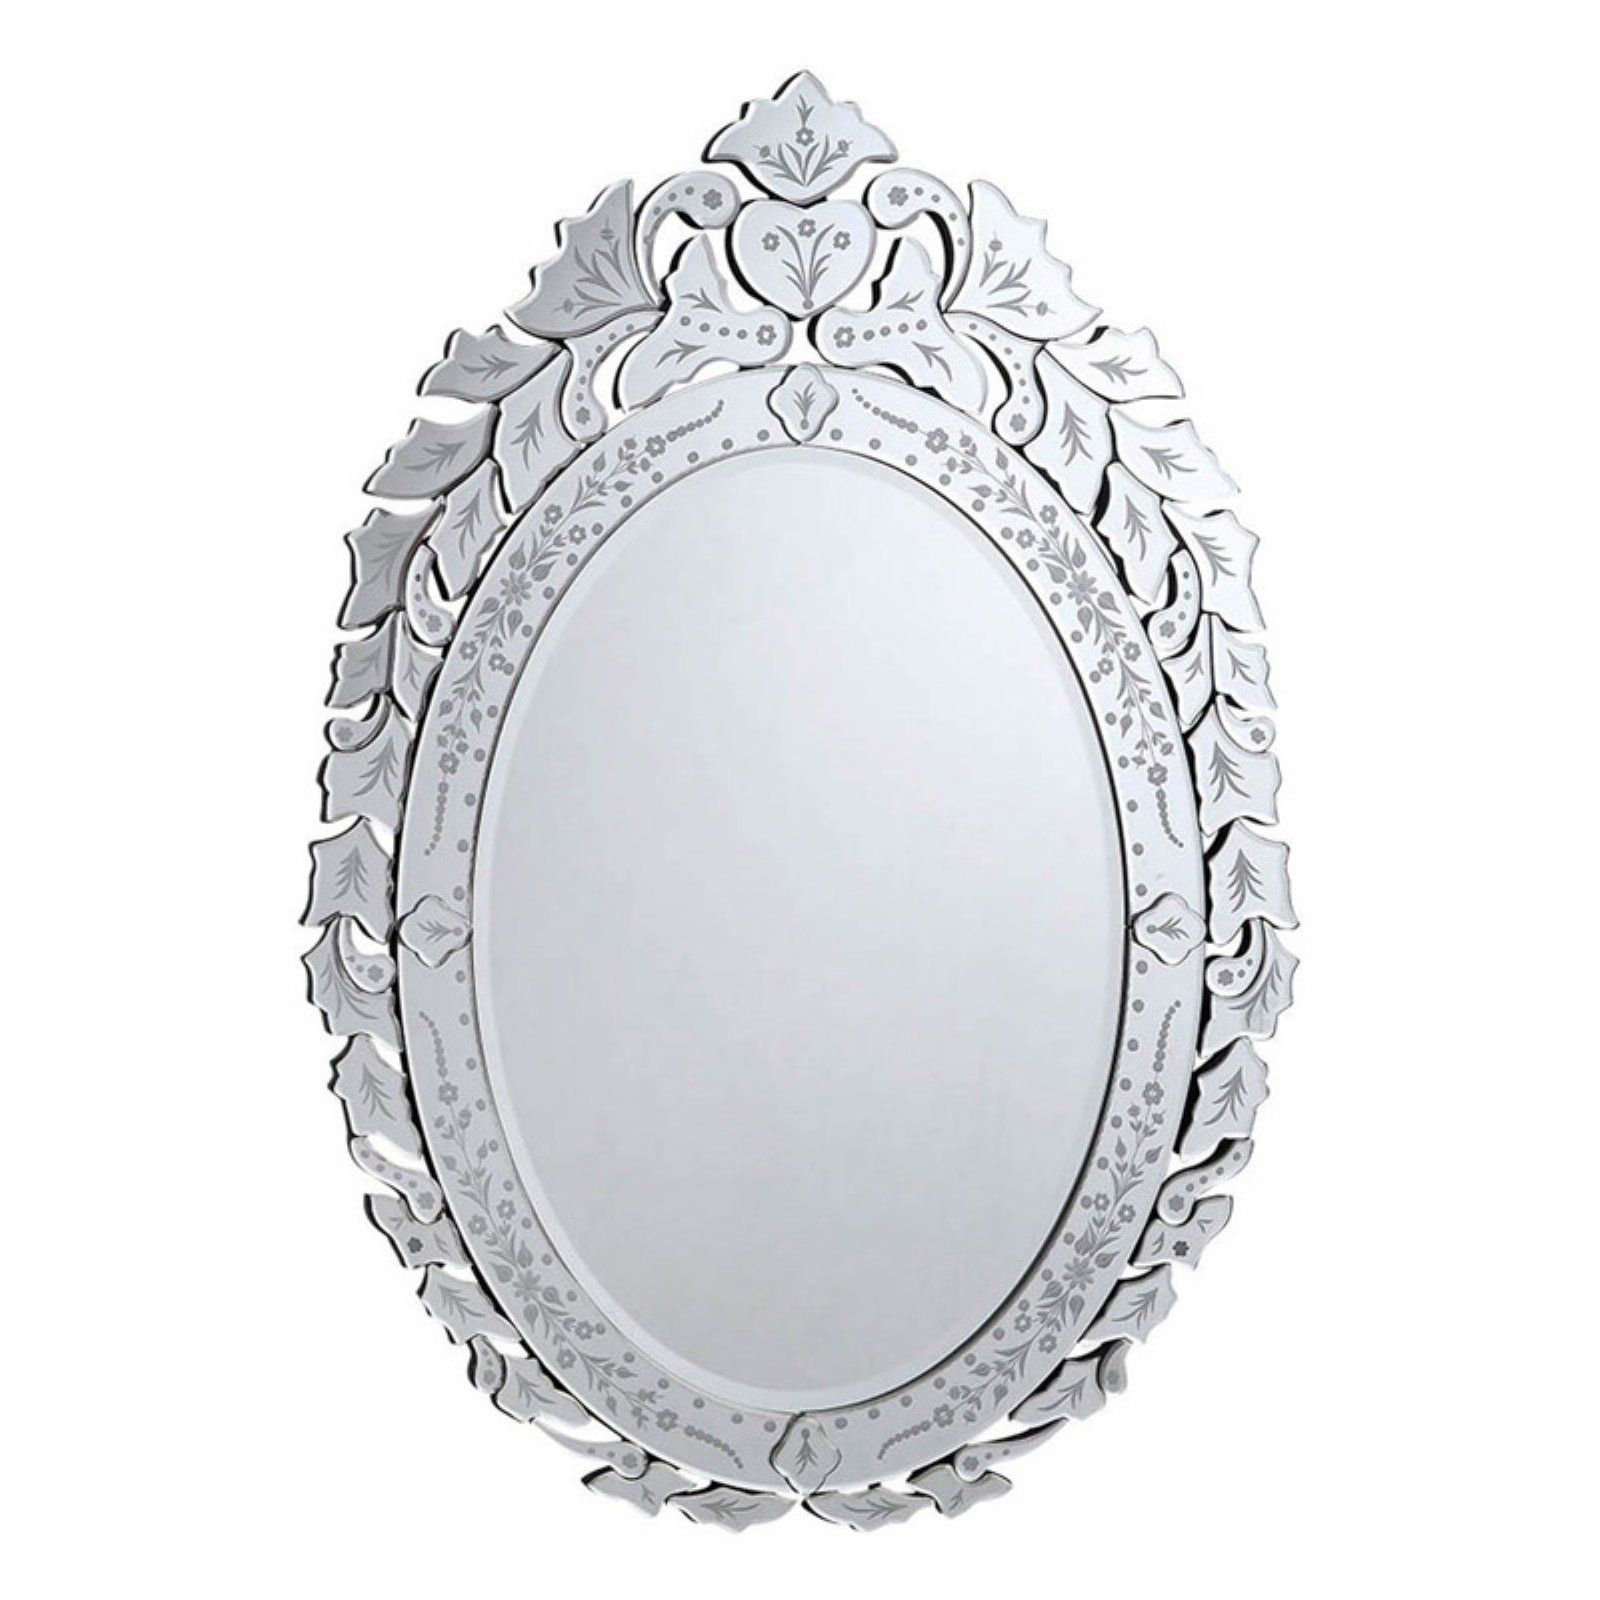 Elegant Decor Venetian Wall Mirror 32 75w X 44 5h In In 2020 Venetian Wall Mirror Mirror Wall Transitional Mirrors